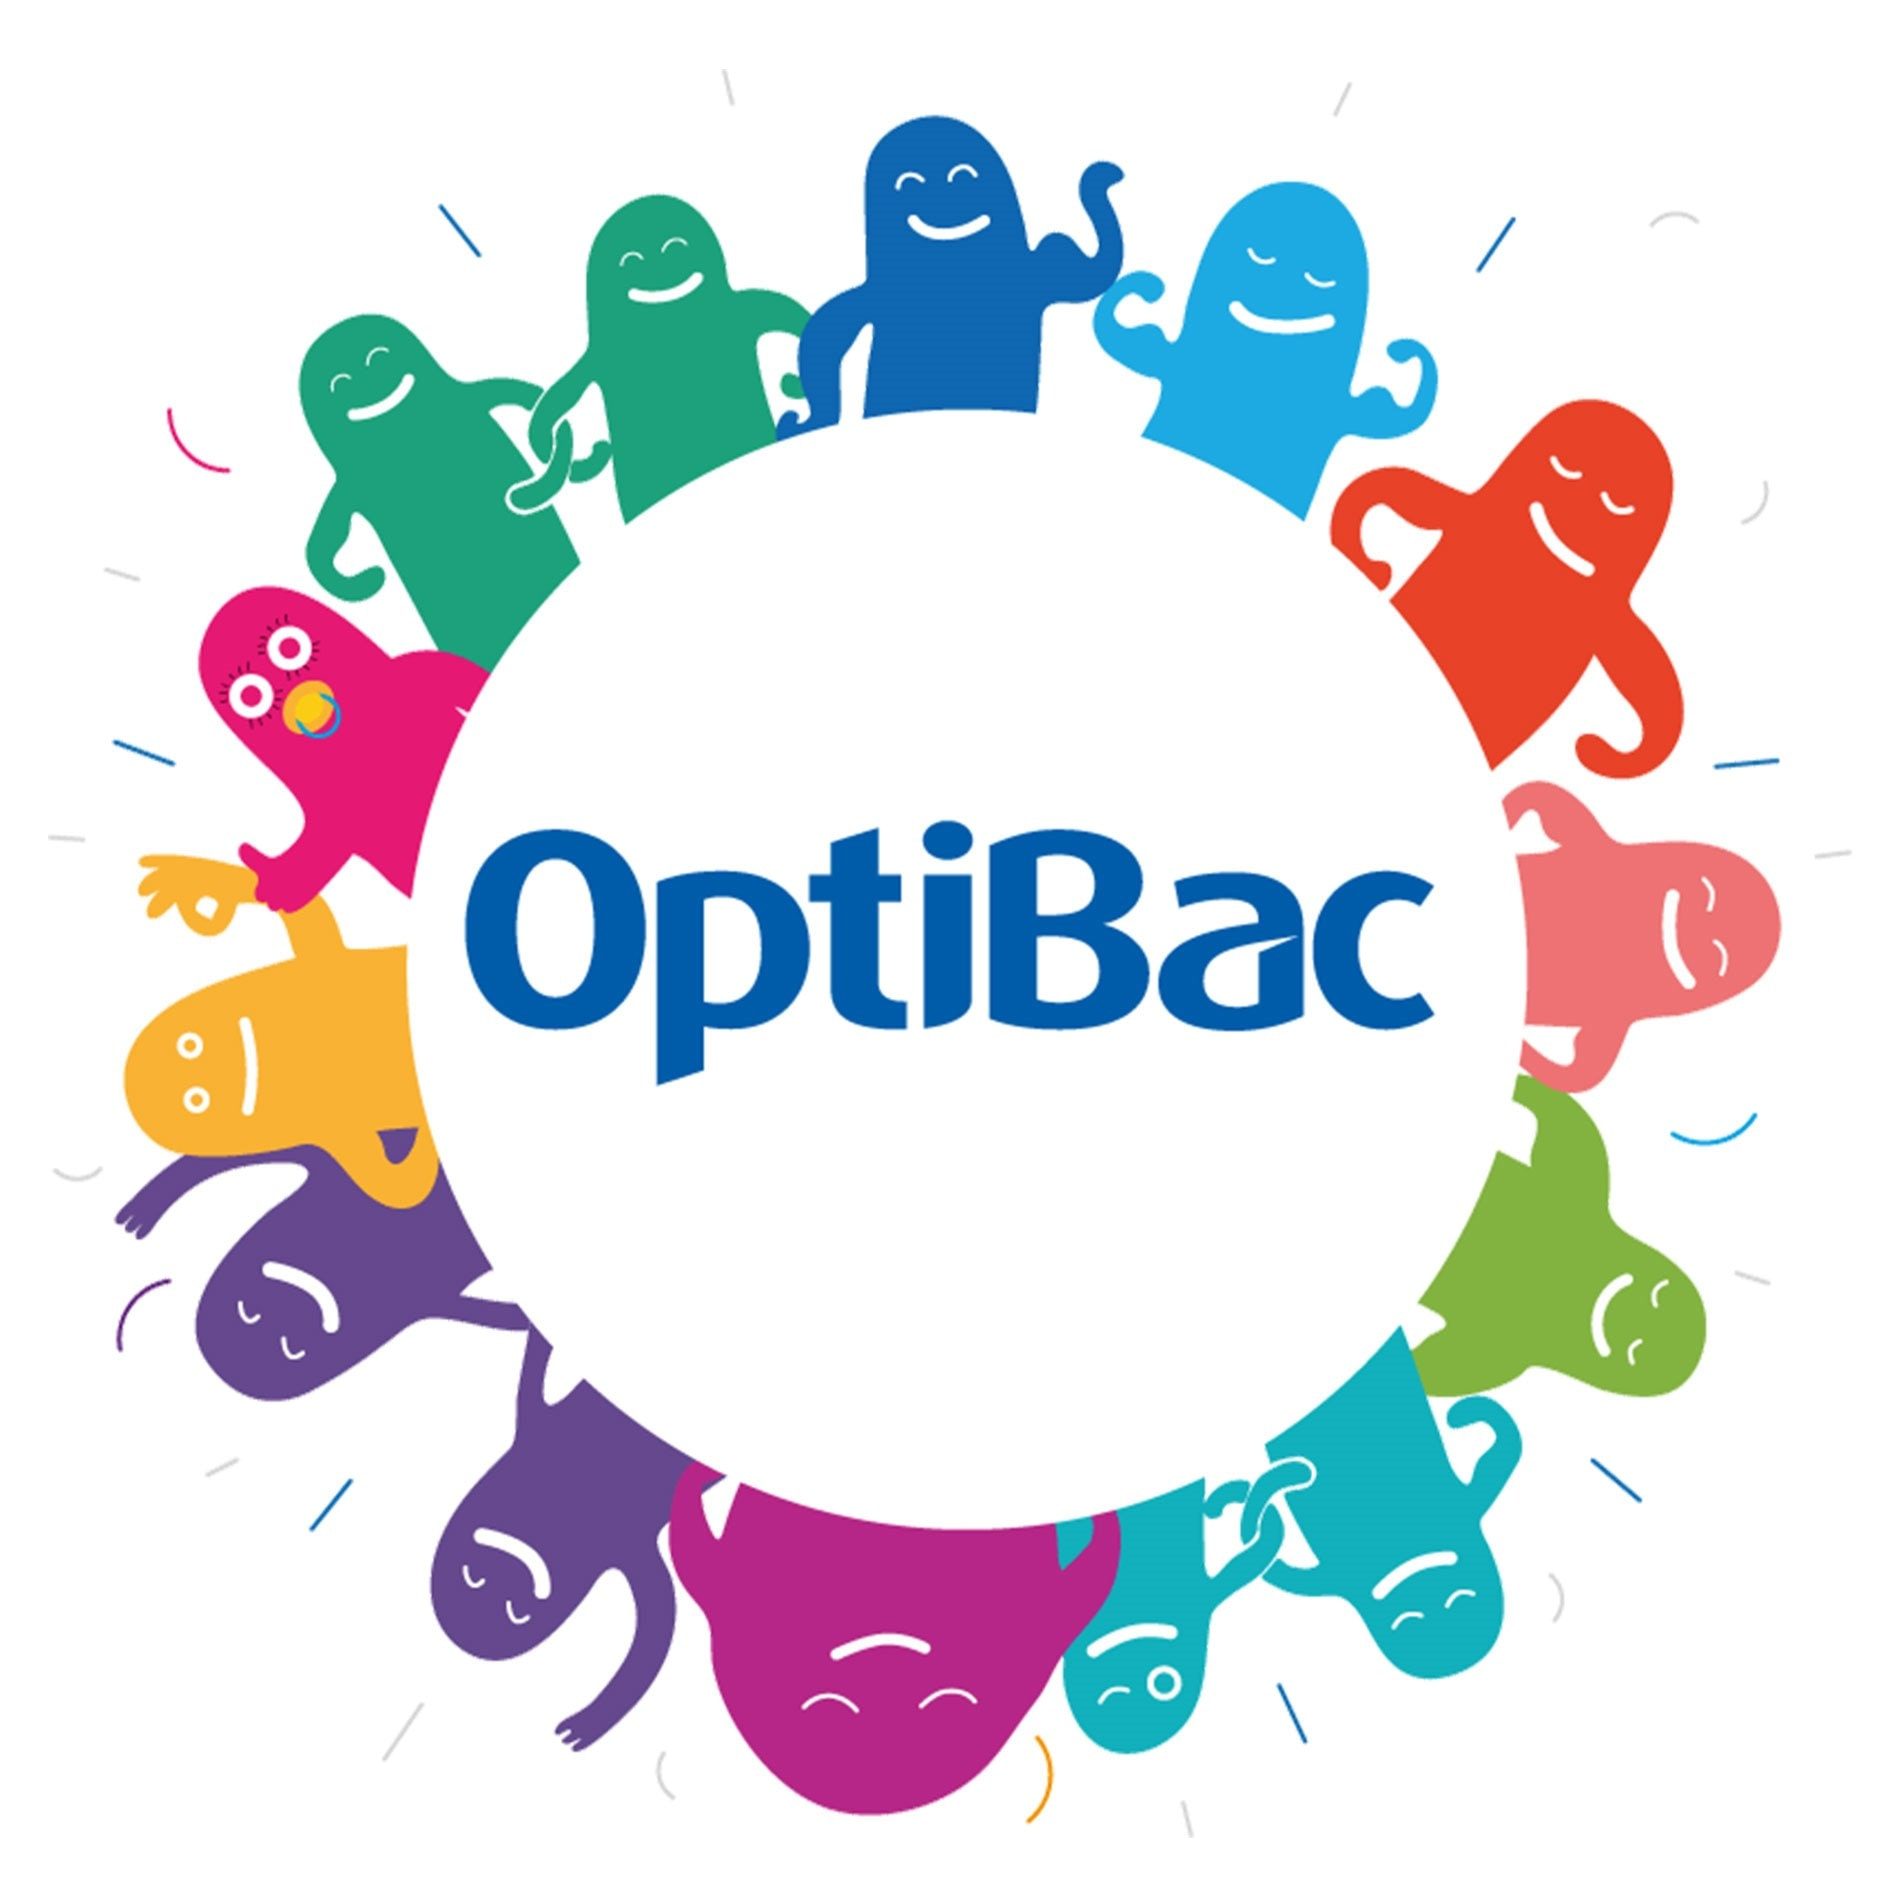 About OptiBac Probiotics